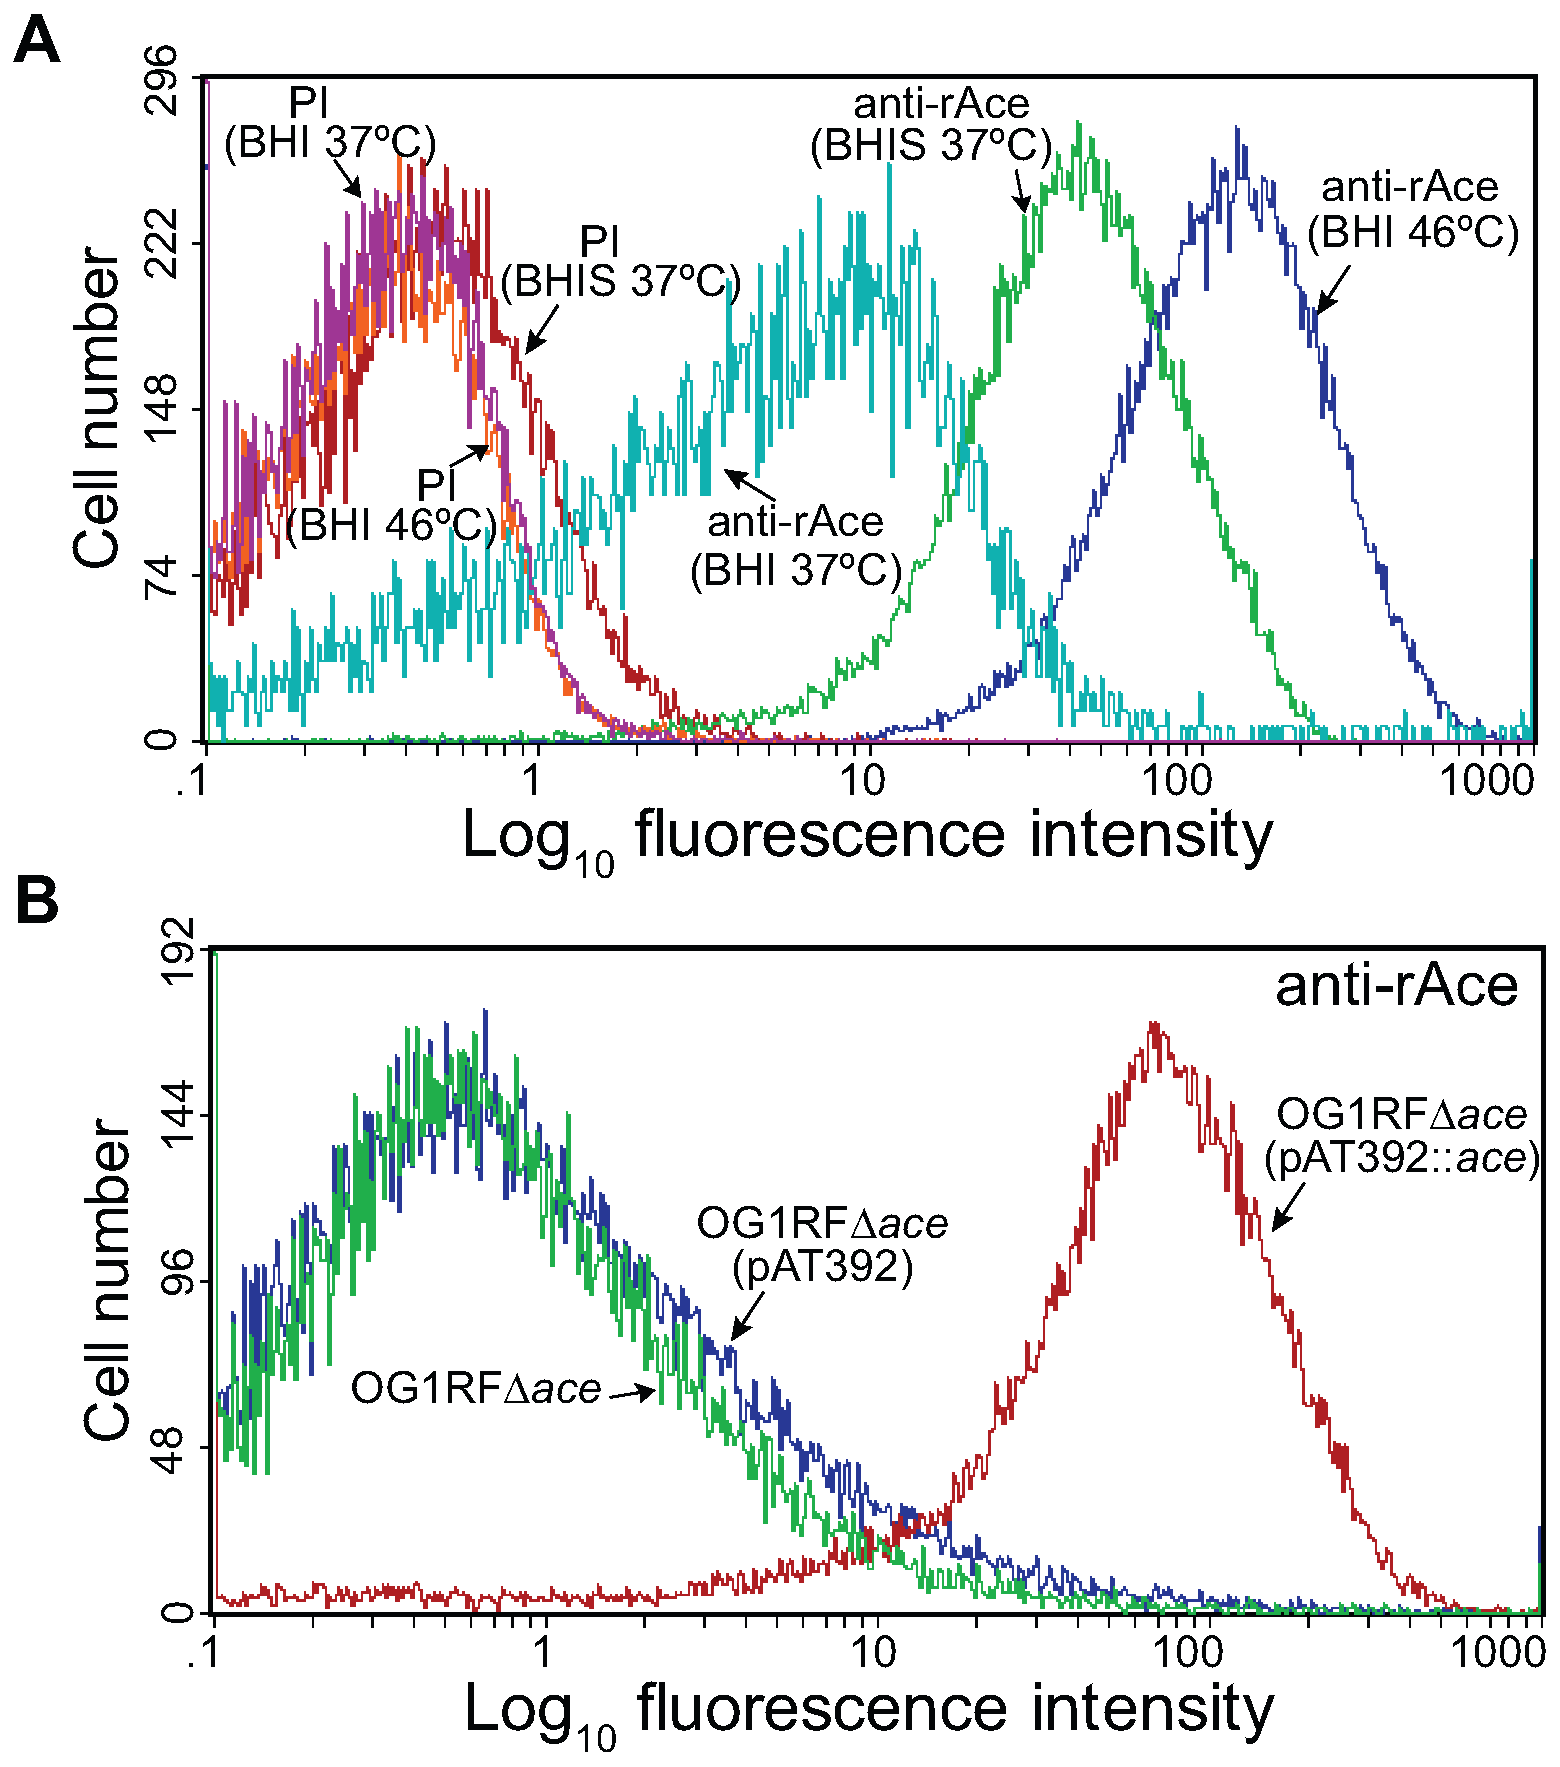 Flow cytometry analysis of cell surface expression of Ace by <i>E. faecalis</i> OG1RF, its isogenic <i>ace</i> deletion mutant and its <i>in trans</i> complemented <i>ace</i> deletion mutant.